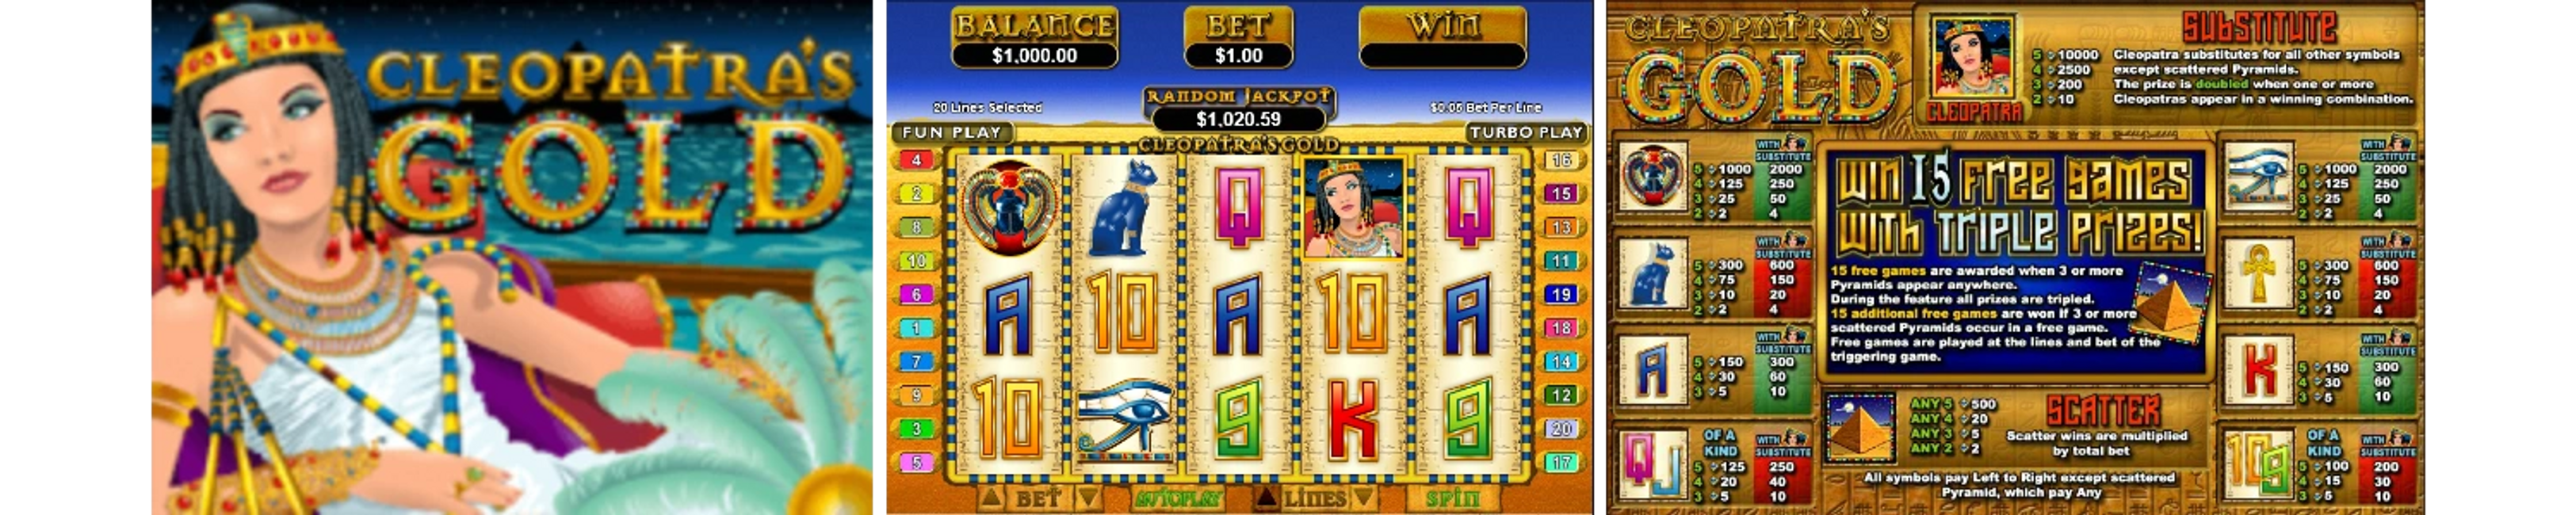 Cleopatra's Gold Online Video Slot Review